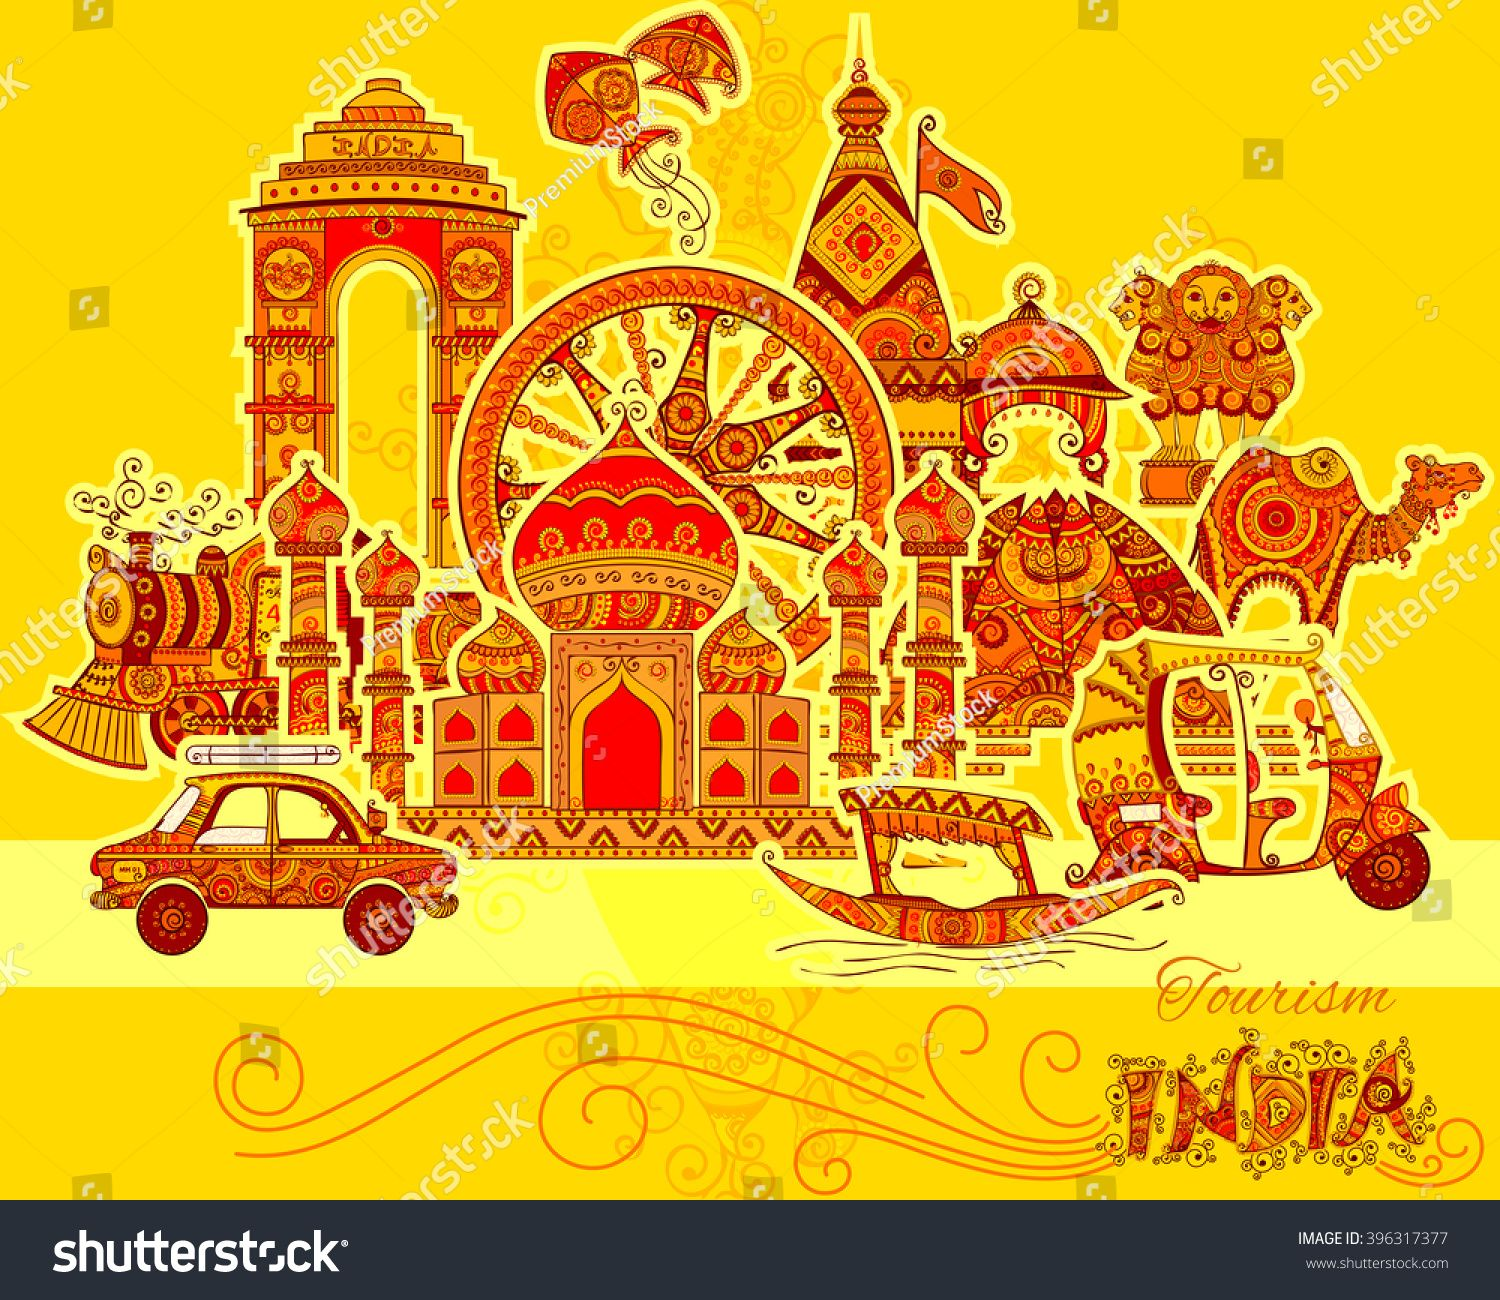 Art From India Indian Culture: Vector Design Of Monument And Culture Of India In Indian